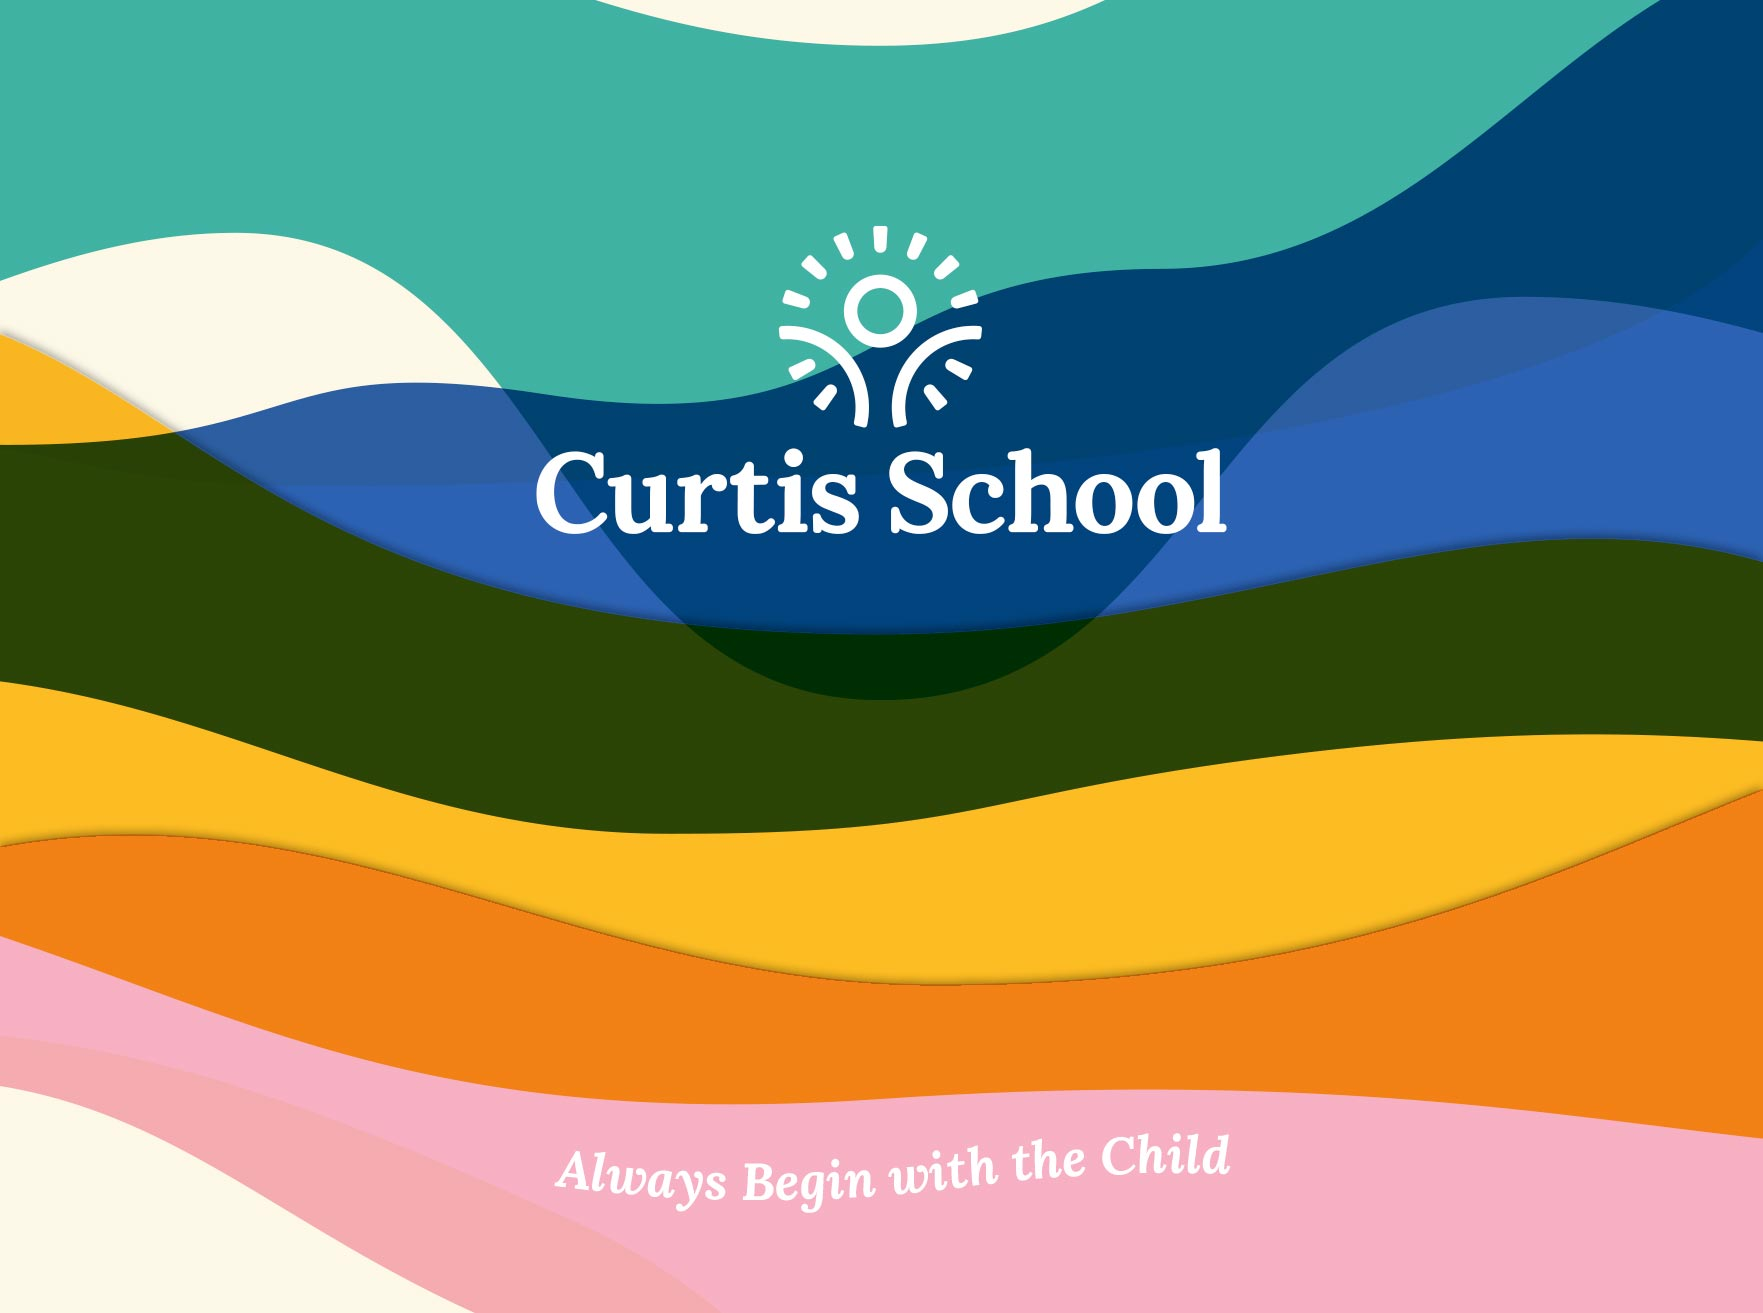 Curtis School Admissions Viewbook Cover